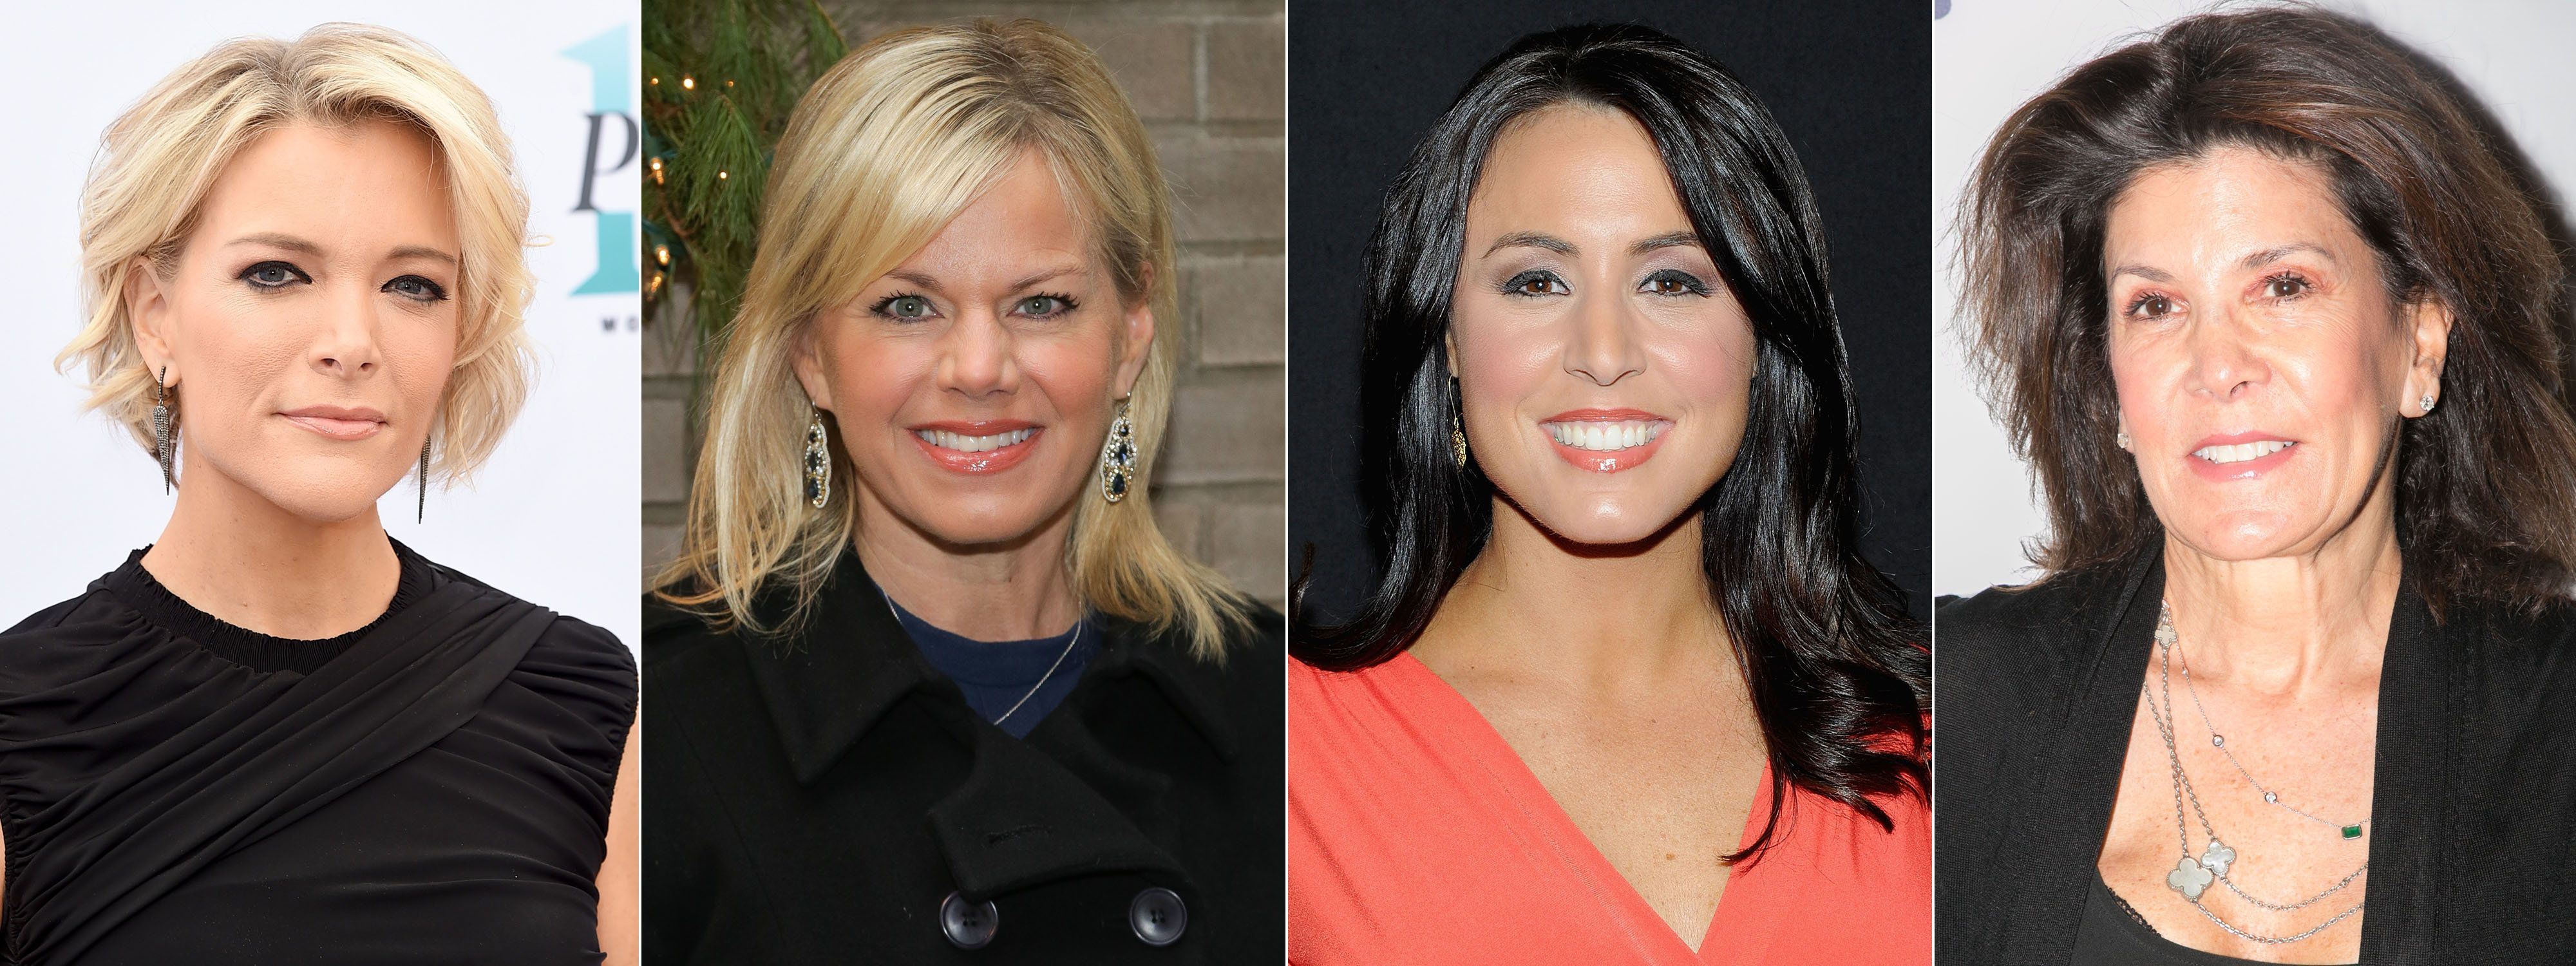 Megyn Kelly, Gretchen Carlson, Andrea Tantaros and Shelley Ross have all accused Roger Ailes of sexual harassment.